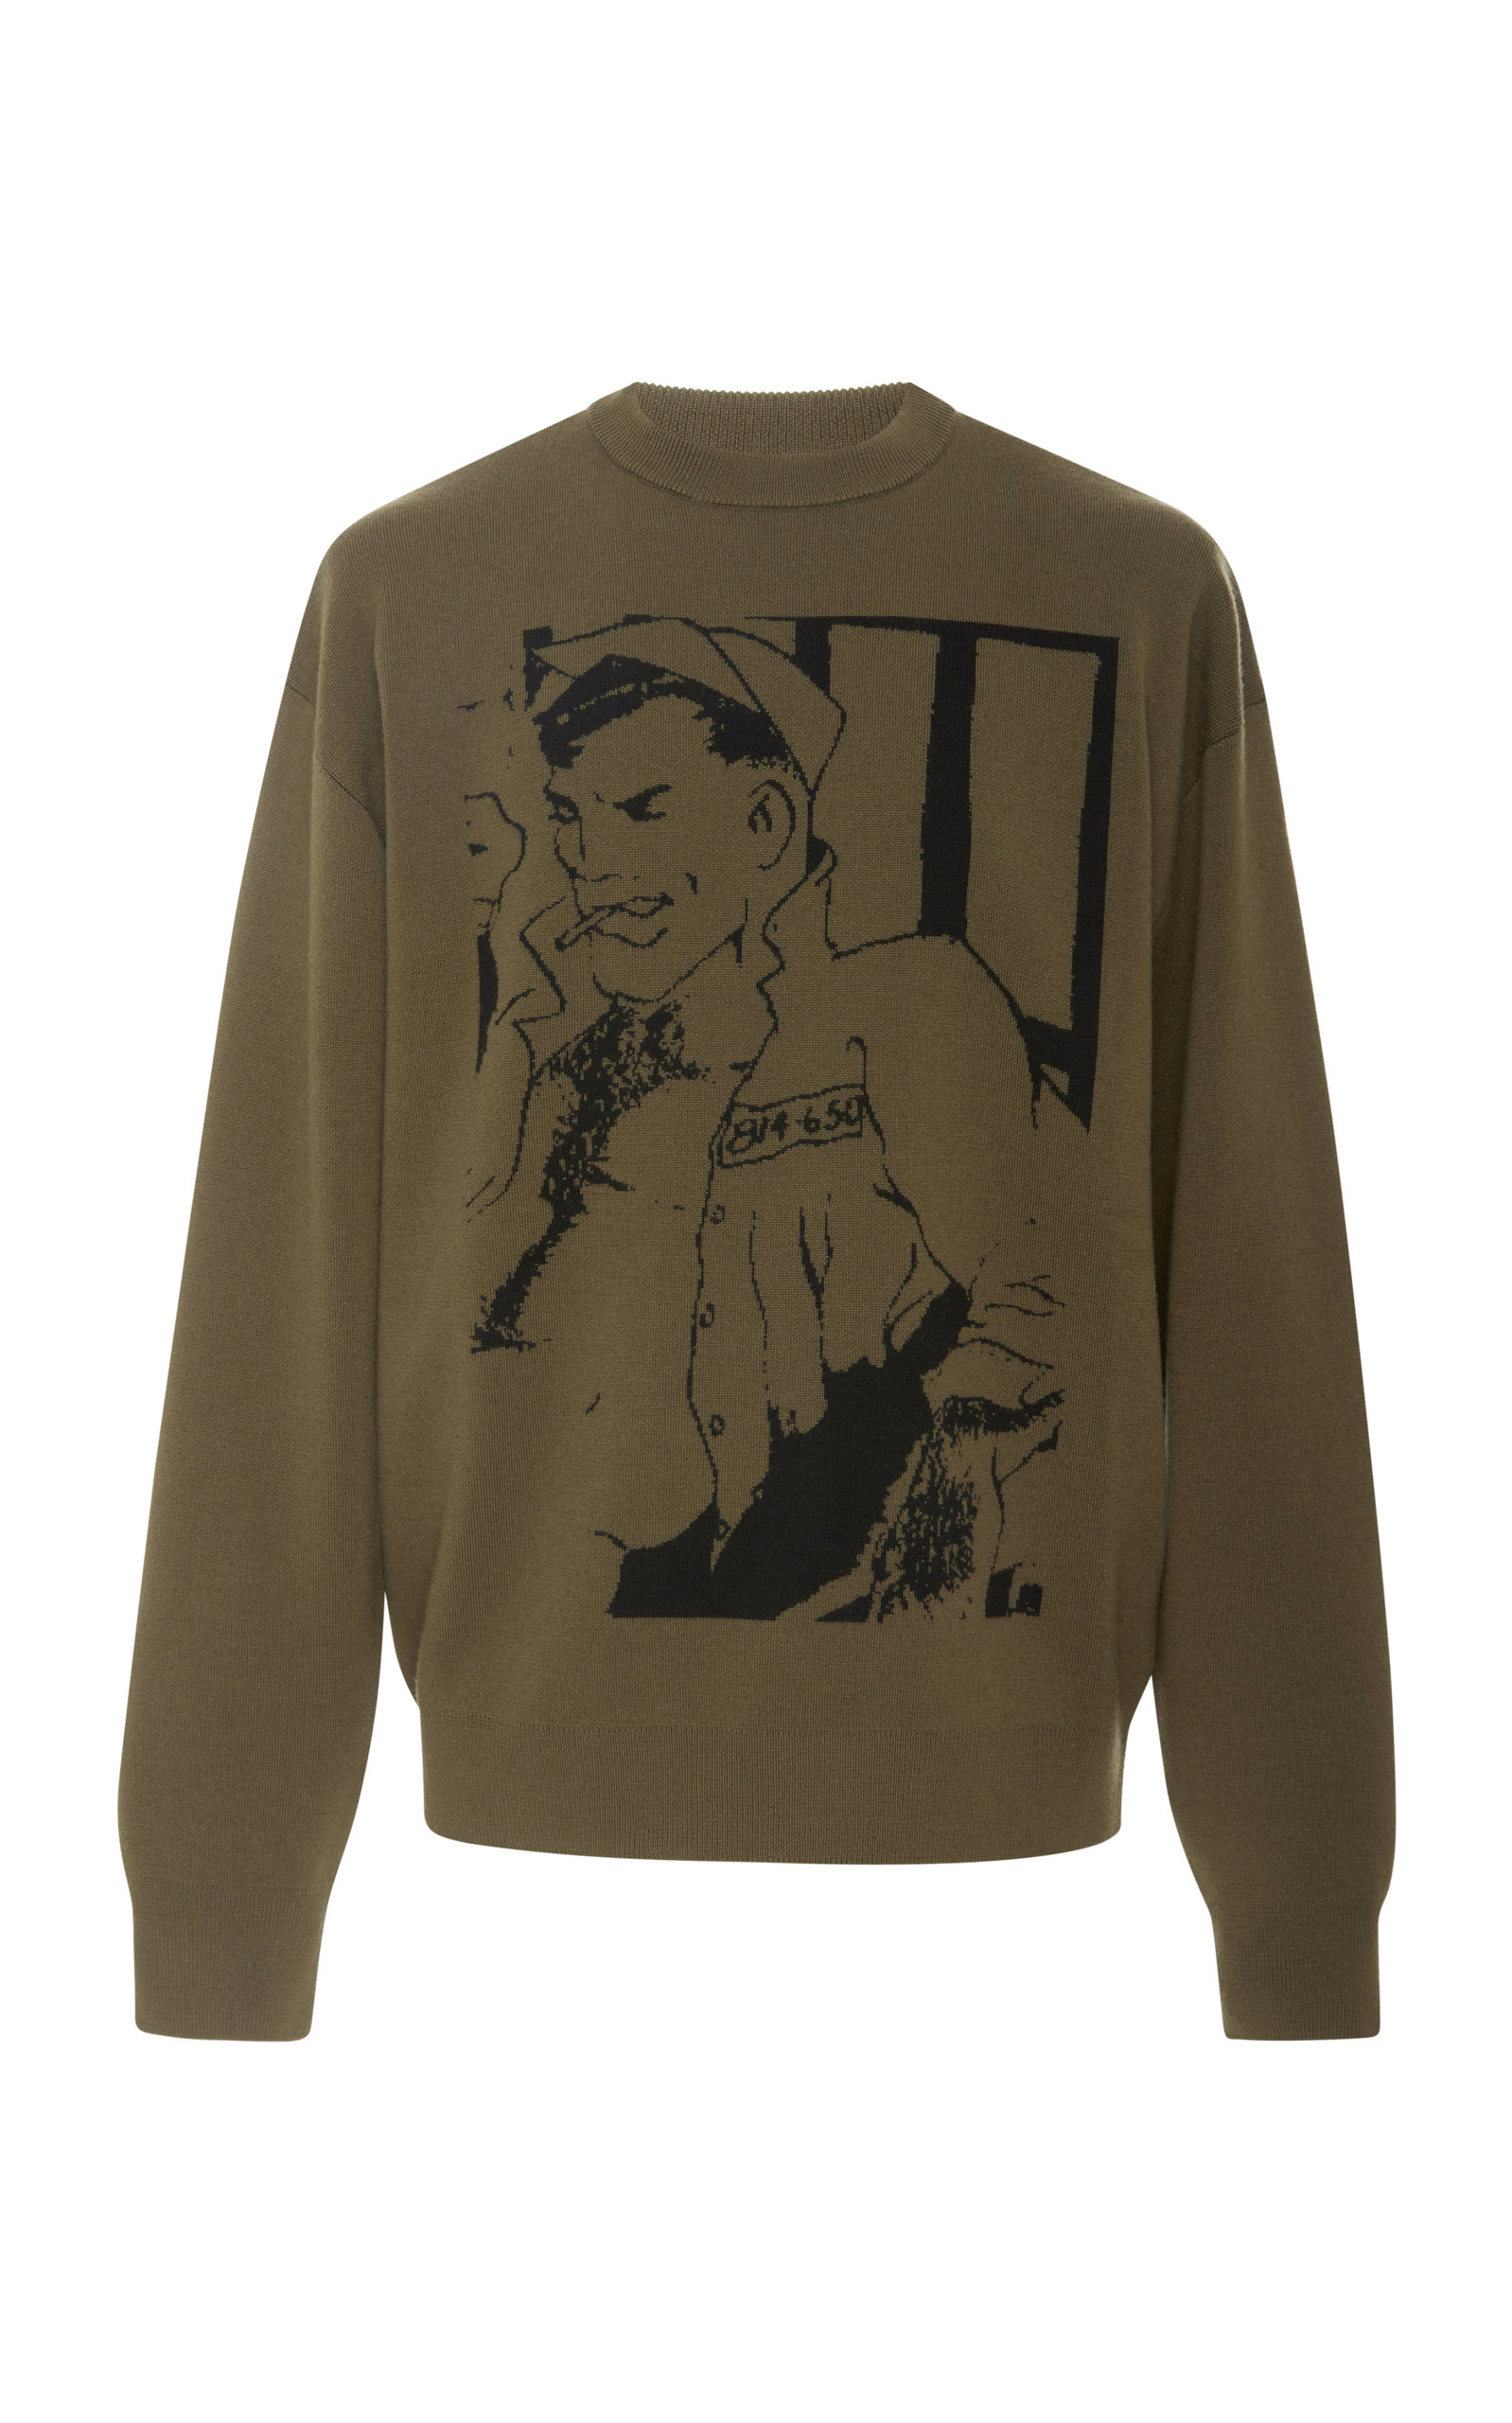 Crewneck Sailor In w Sweater Sketch Green Khaki Anderson anderson Jw J zxR0qSXwR